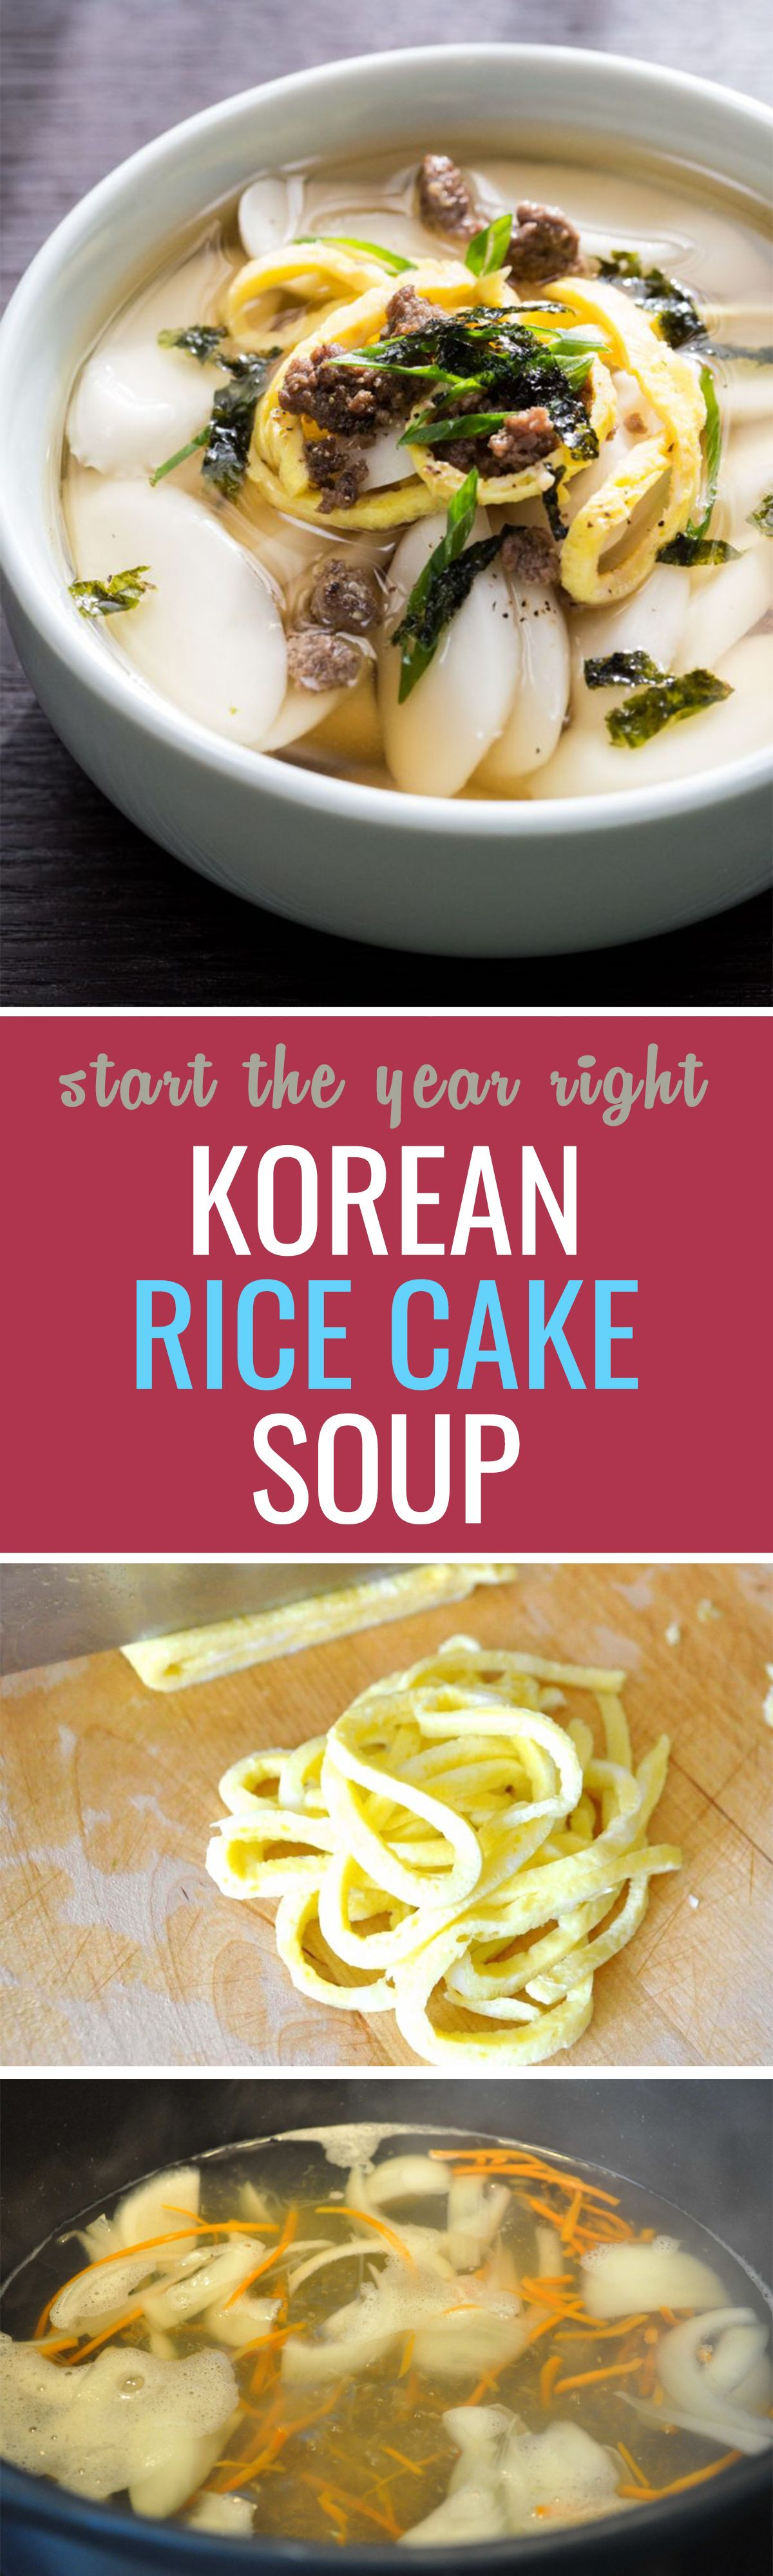 Happy New Year Start 2018 With This Traditional Korean New Years Rice Cake Soup Rice Cake Soup Korean Rice Cake Recipes